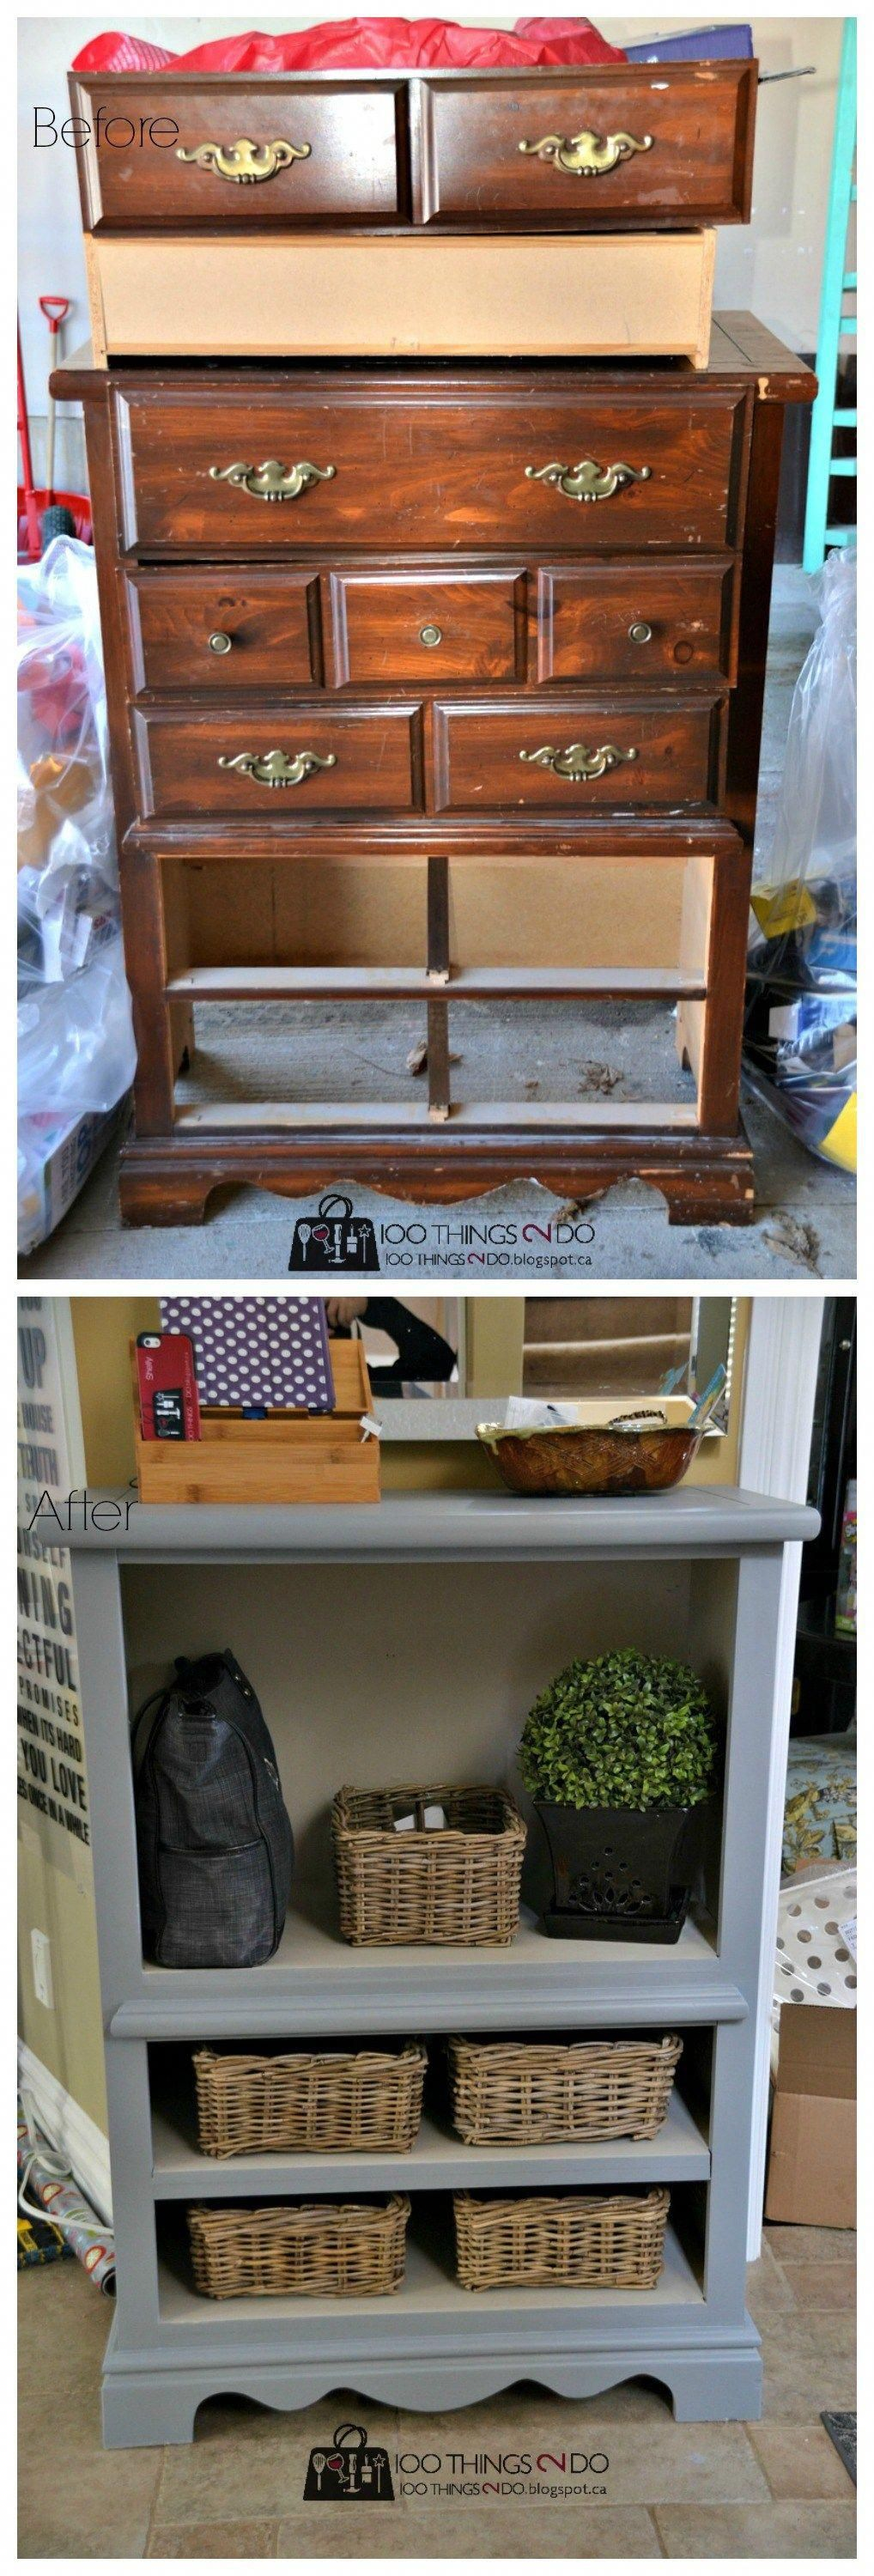 Repurposed Furniture Before And After | just b.CAUSE |Repurposed Furniture Before And After